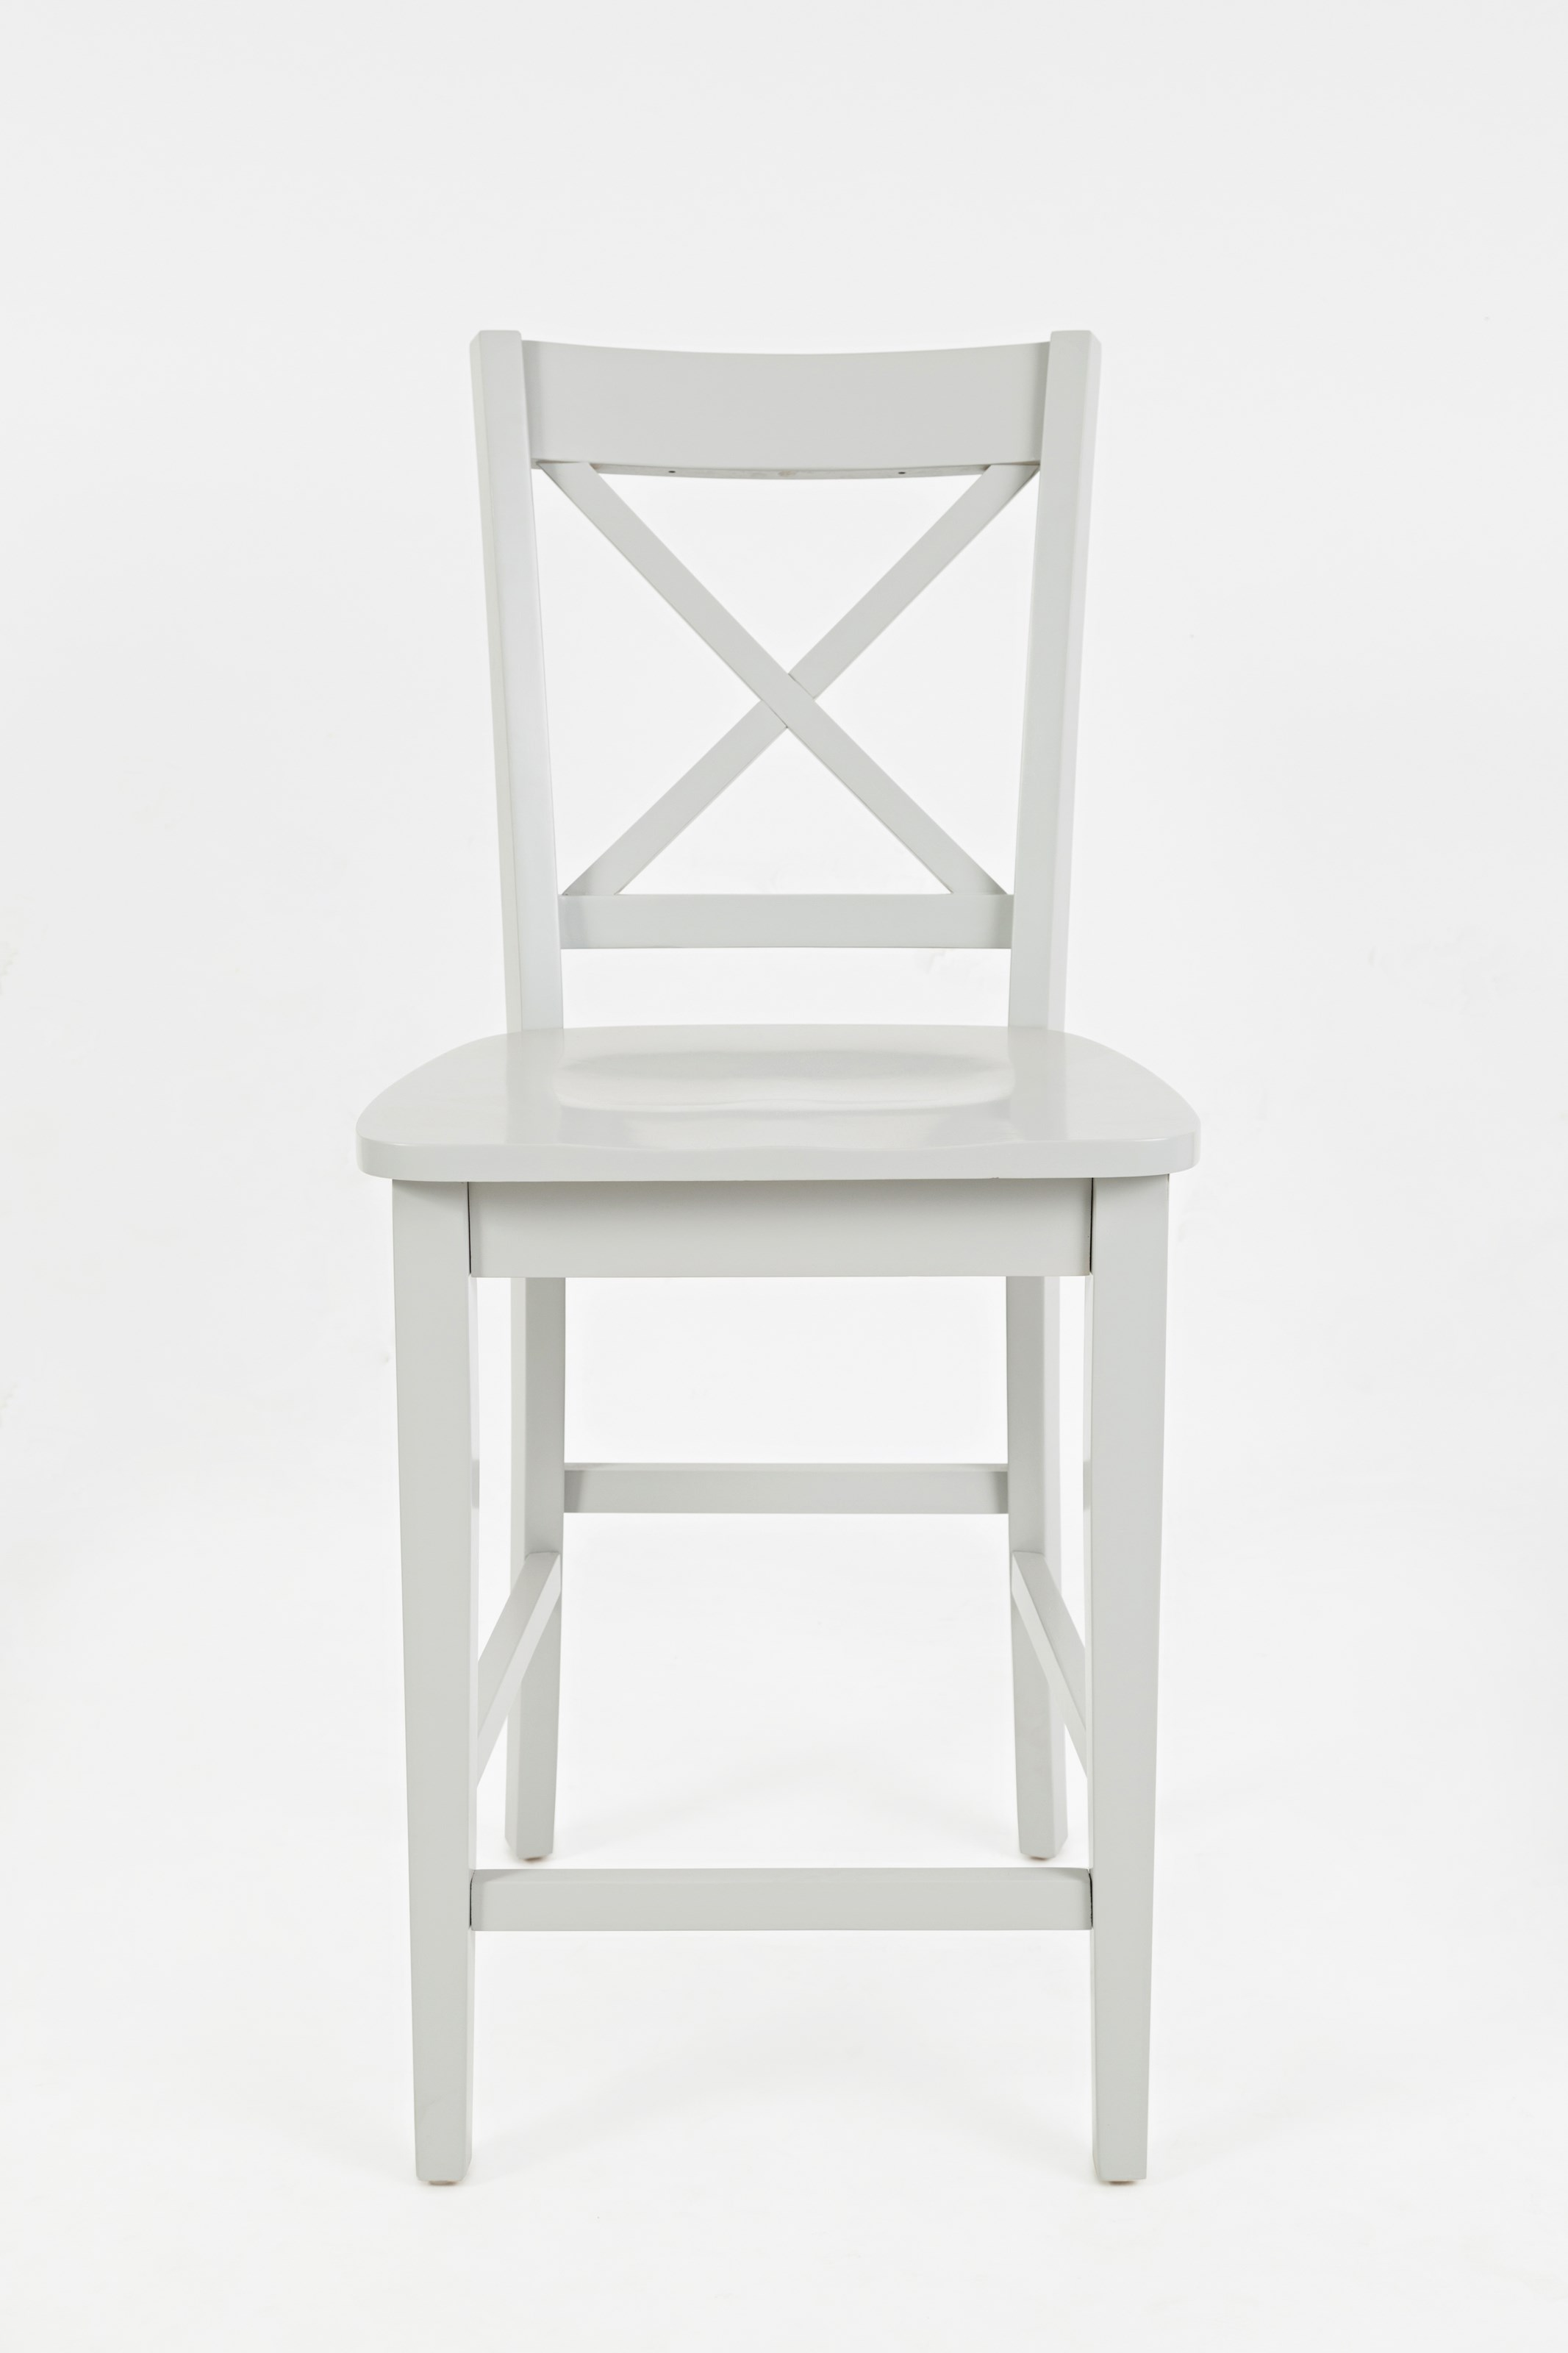 Jofran Simplicity X Back Stool Counter Height Stoney